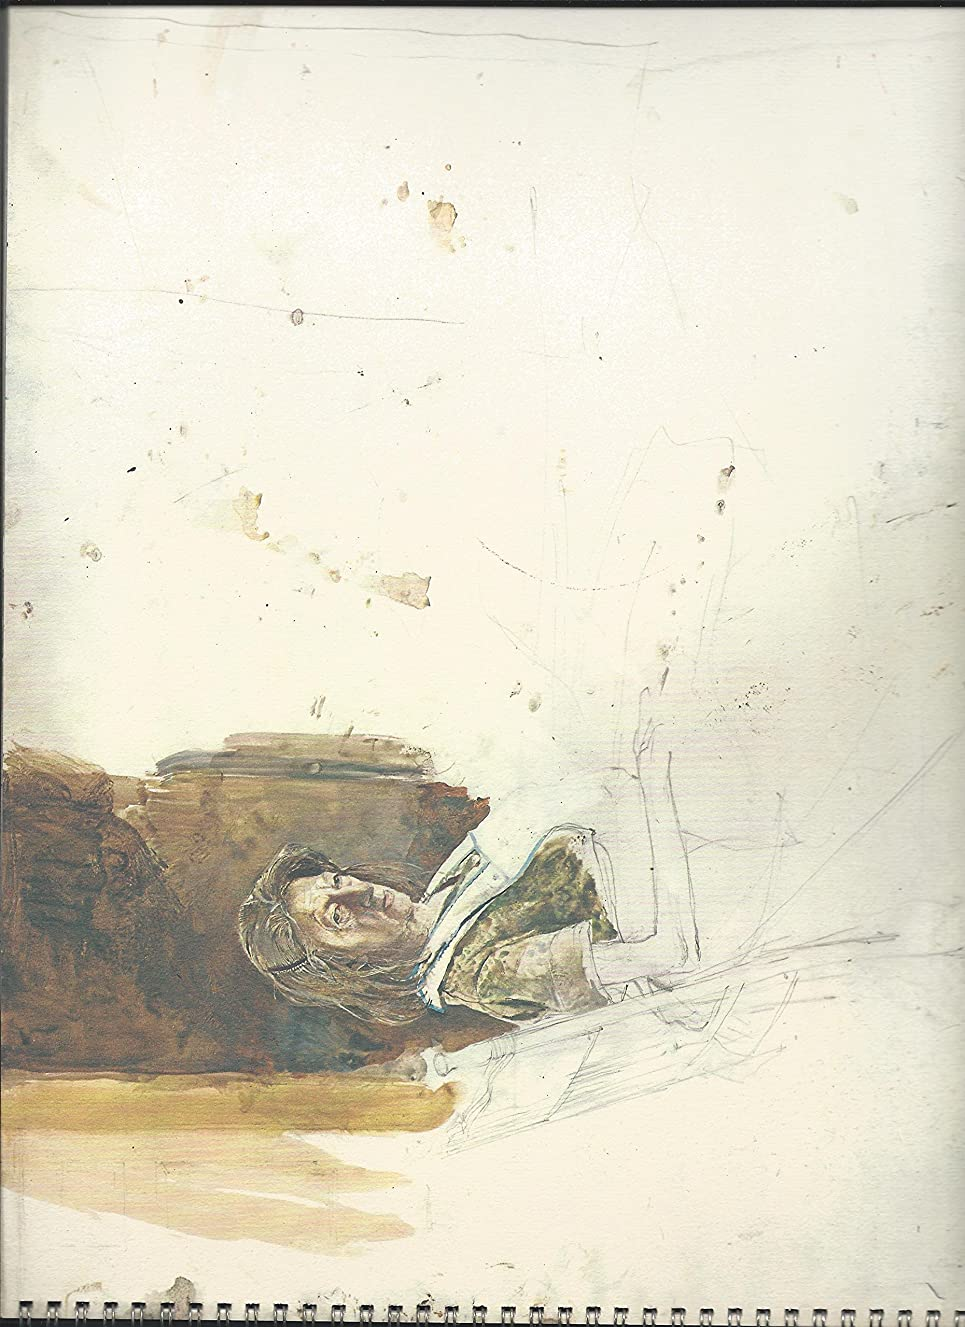 Working at Olsons Watercolors and Drawings by Andrew Wyeth from the Holly and Arthur Magill Collection